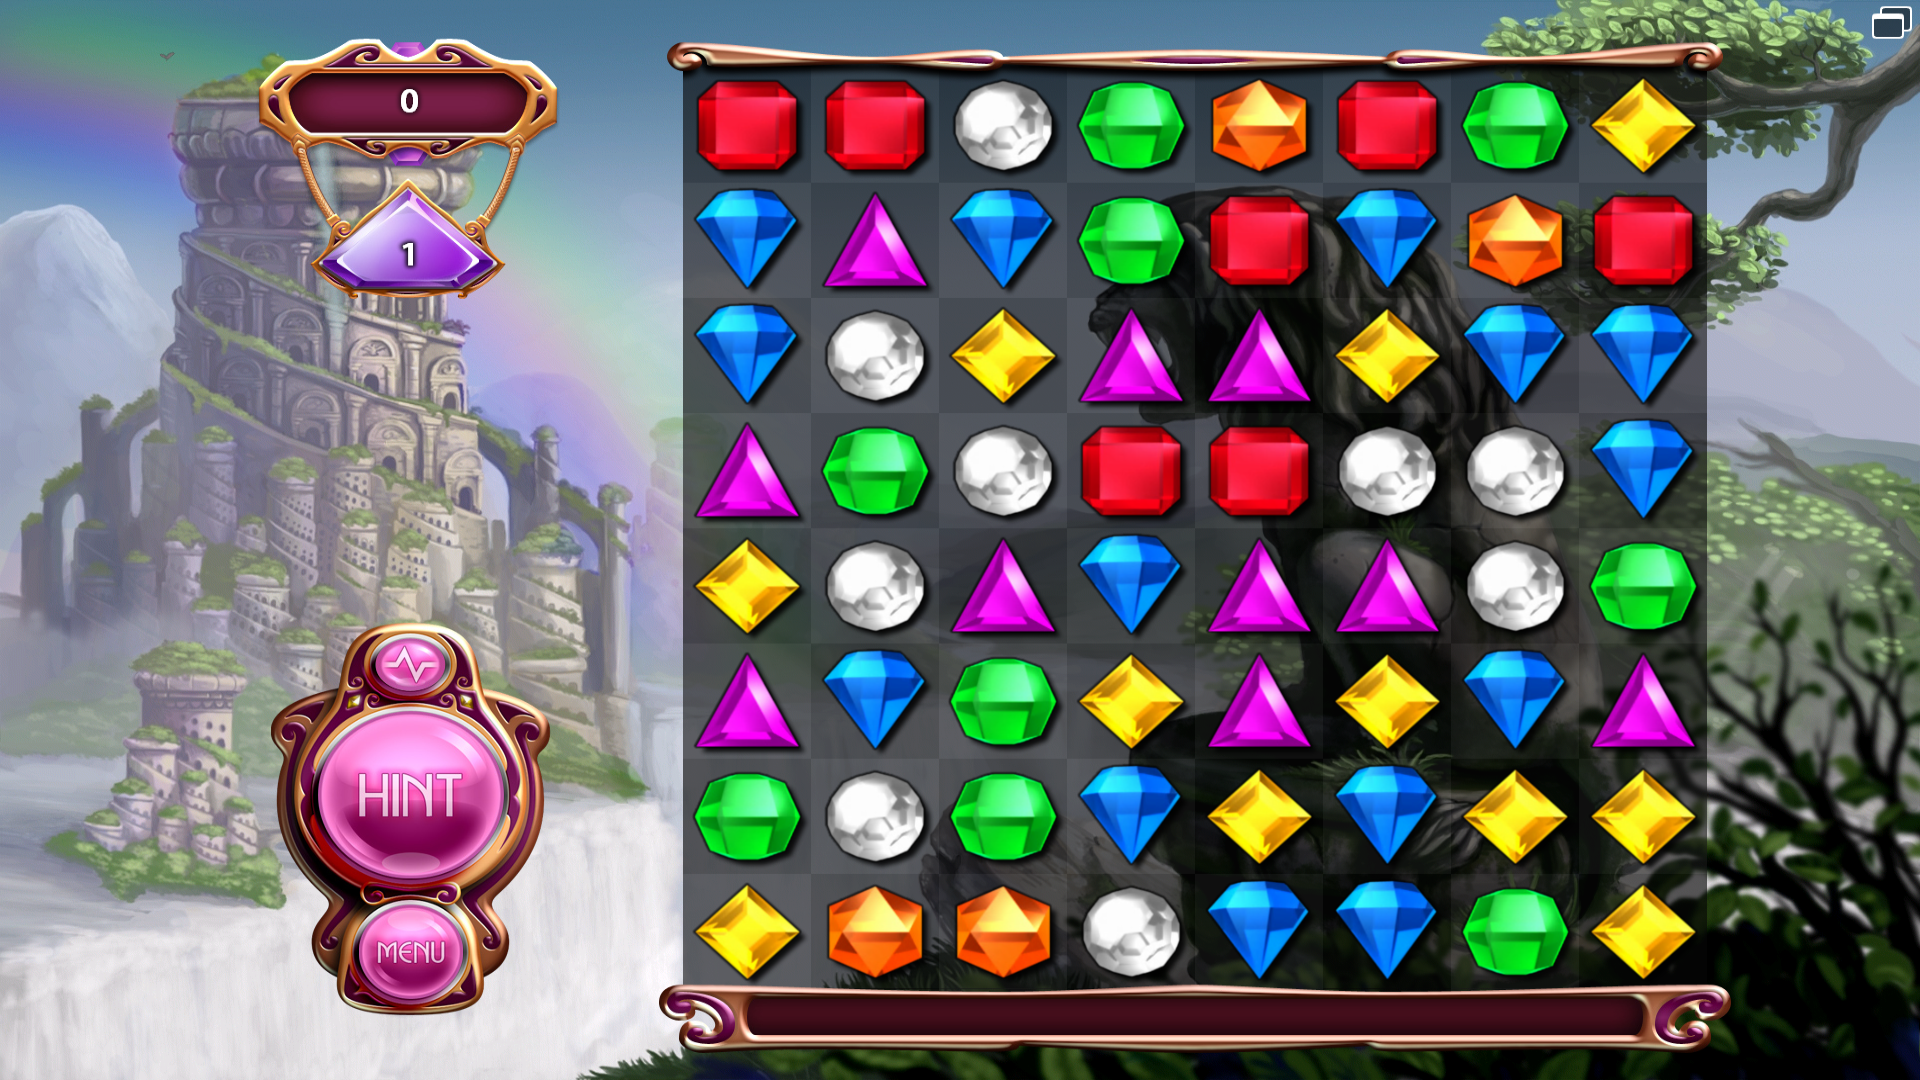 Zen mode bejeweled wiki fandom powered by wikia for Food bar games free online